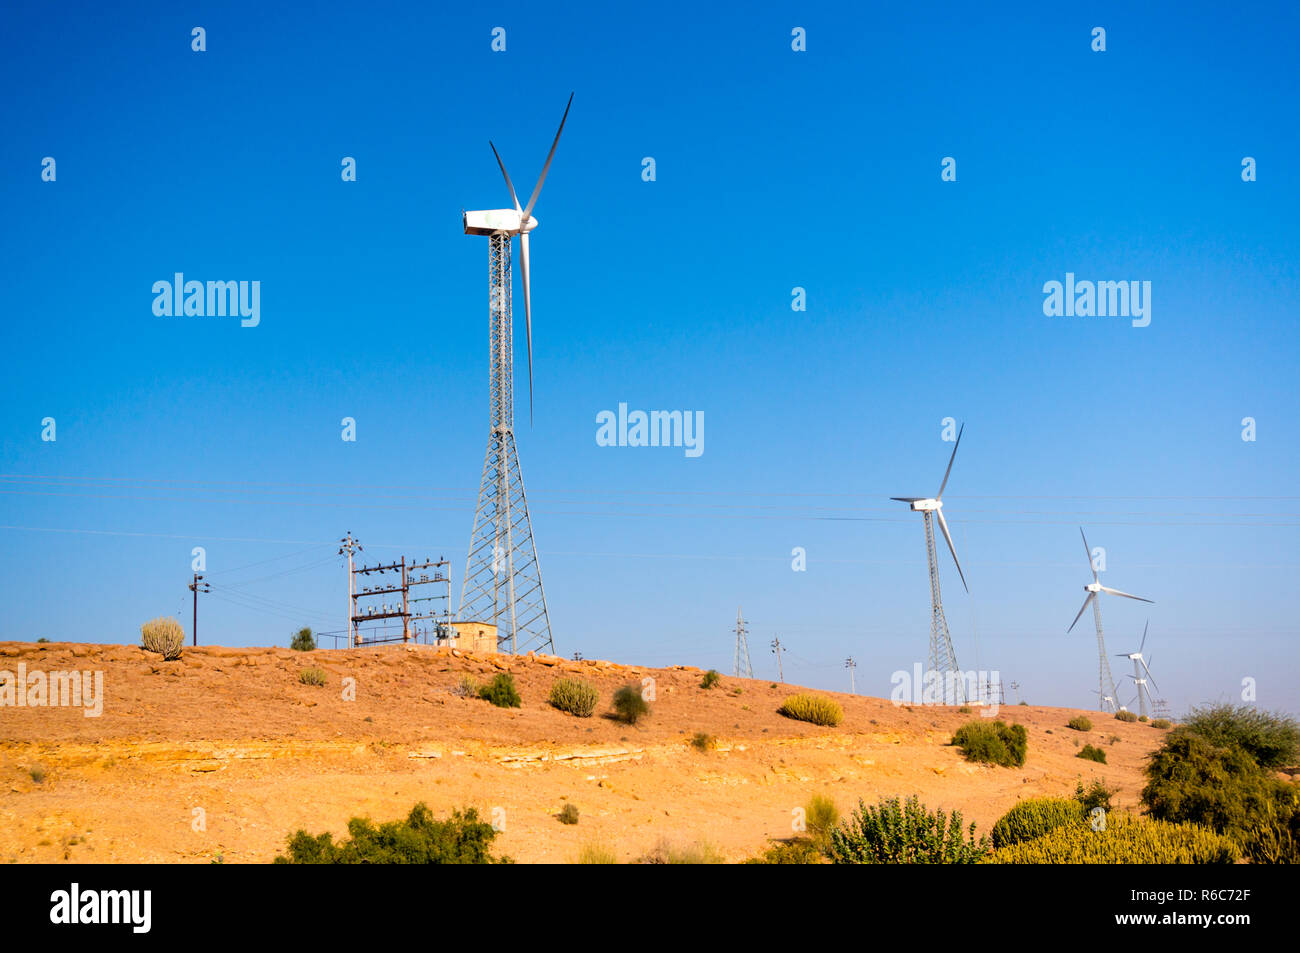 Windmills in the desert of Rajasthan near Jaisalmer  - Stock Image